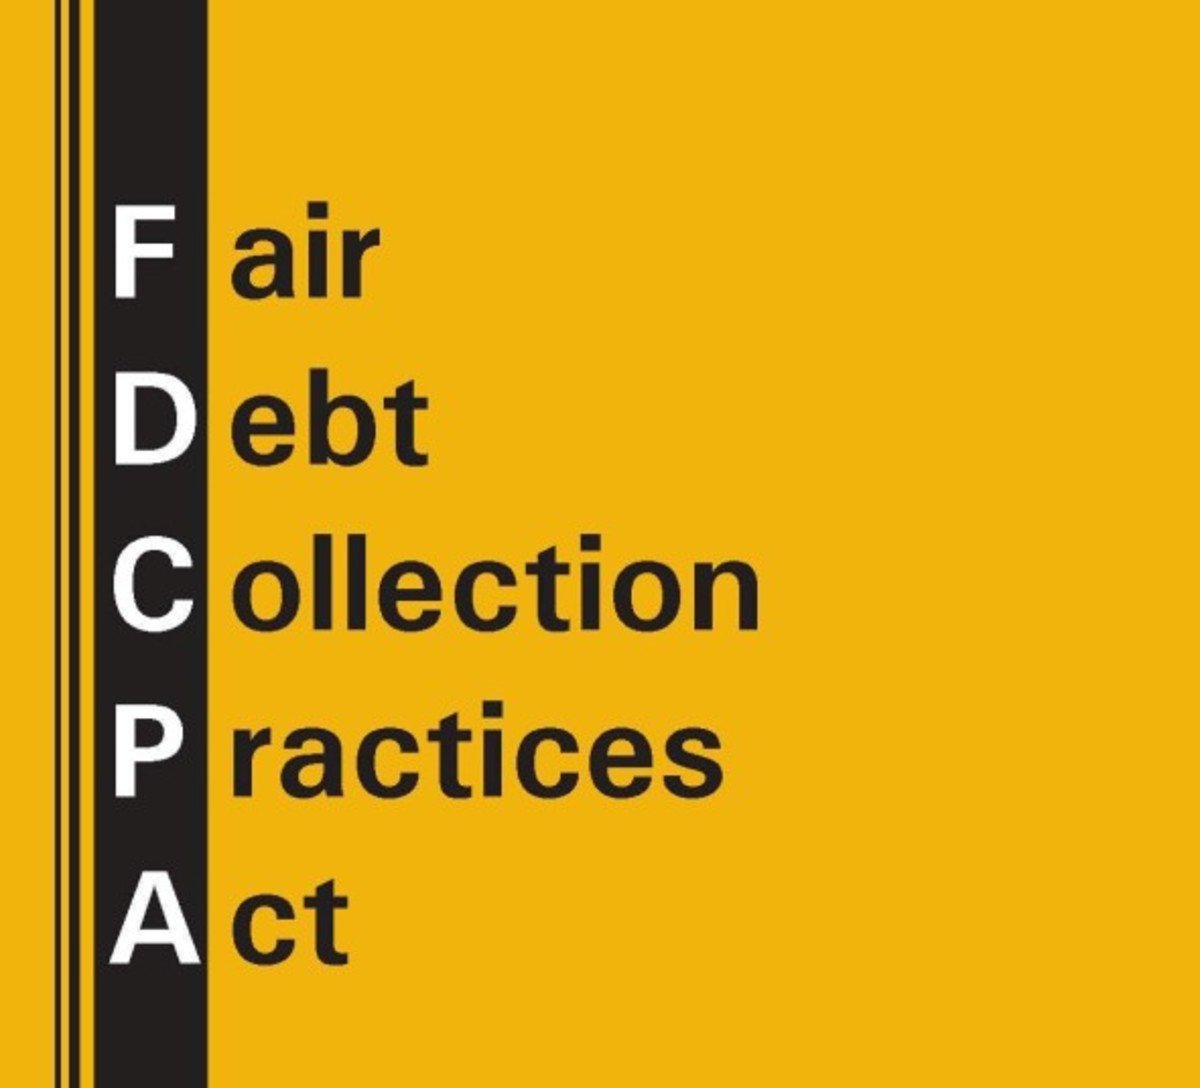 There are consumer protection laws that aid those consumers. One of those laws is the Fair Debt Collection Practices Act (FDCPA). Anyone who has received a debt collection letter should read the Act.